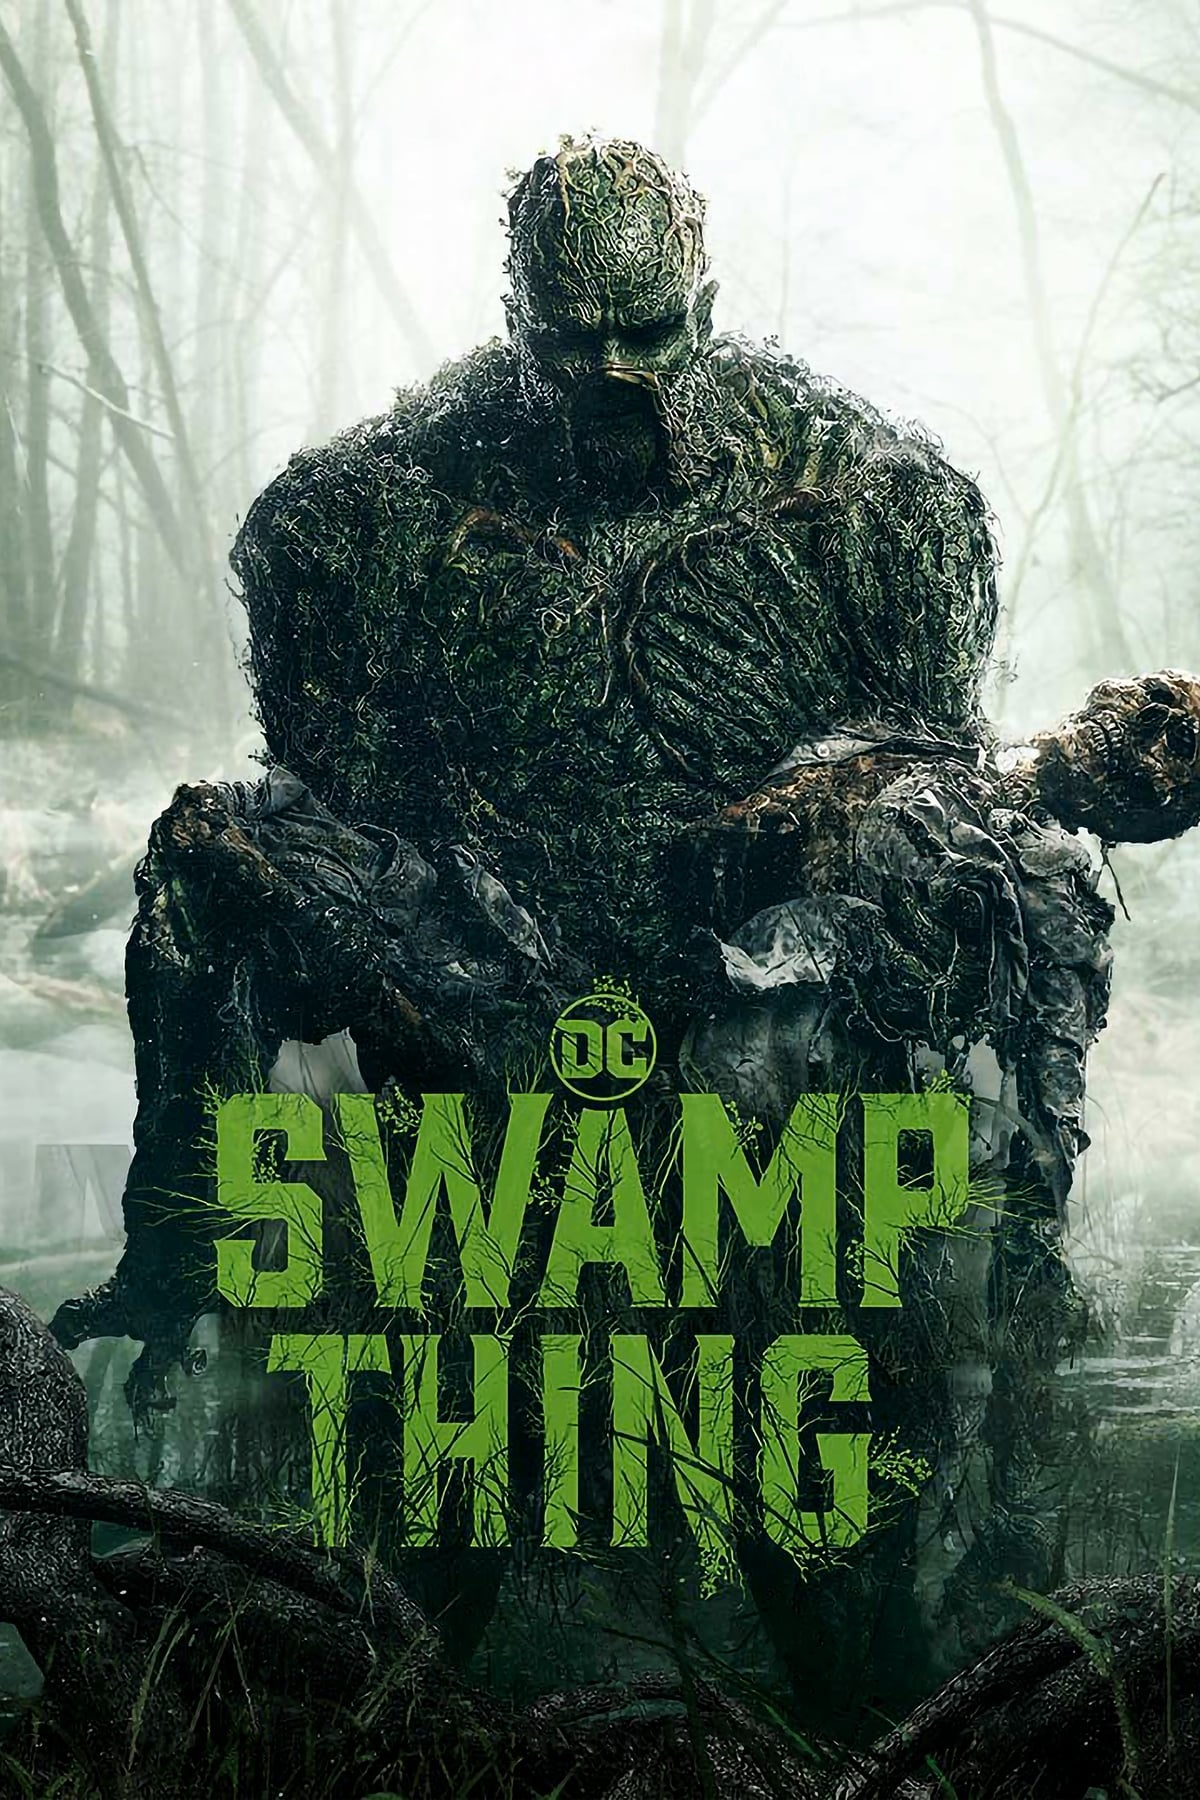 Swamp Thing - Monstro do P�ntano